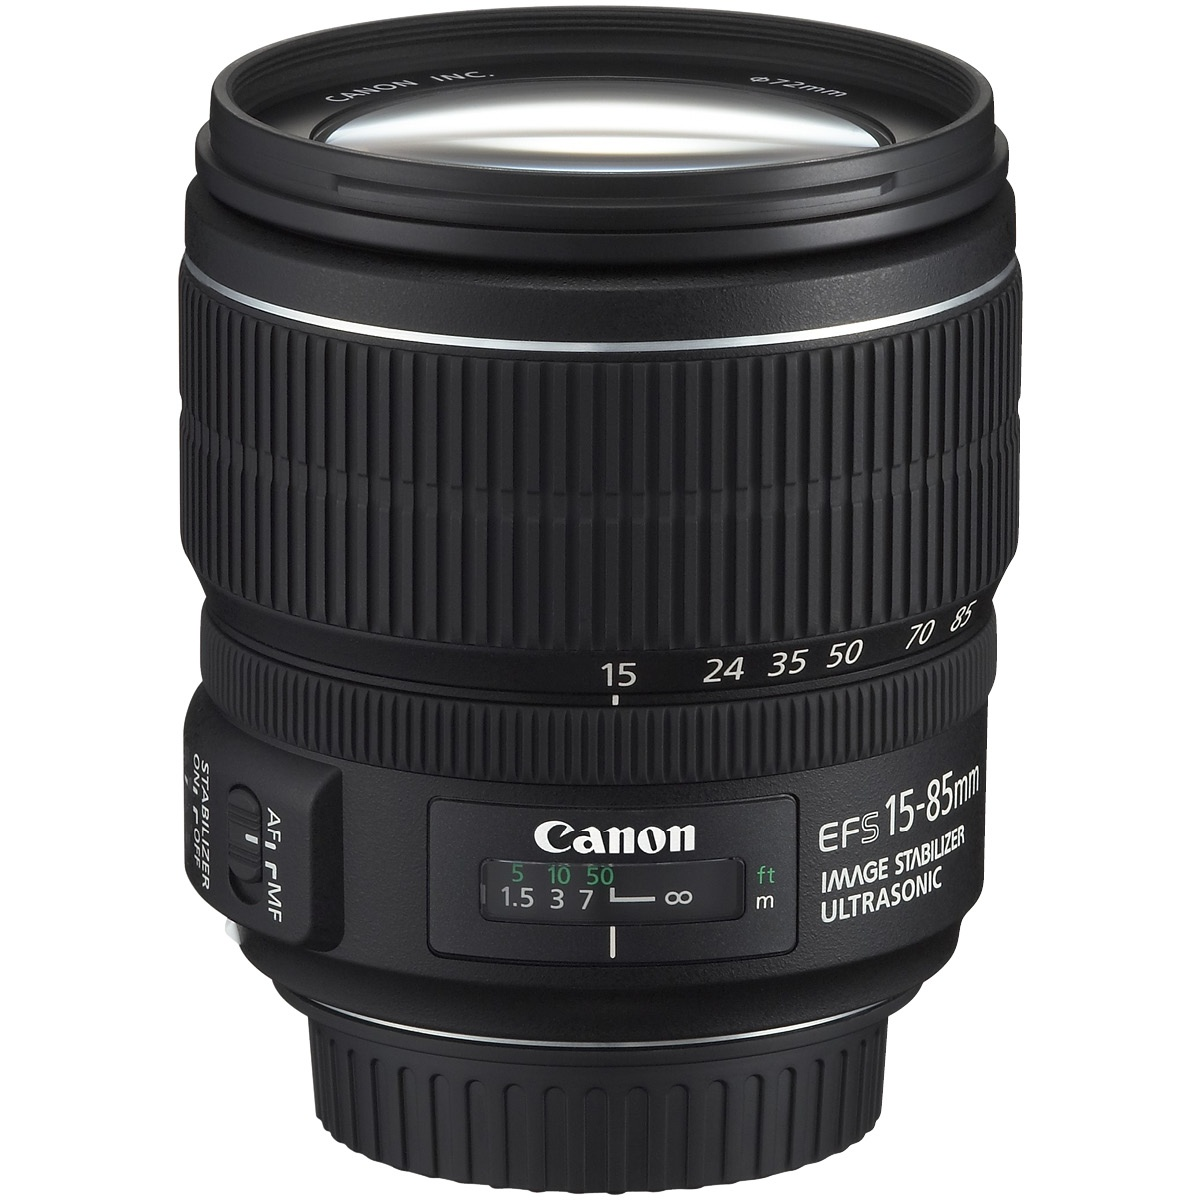 Canon EF-S 15-85 mm 1:3.5-5.6 IS USM